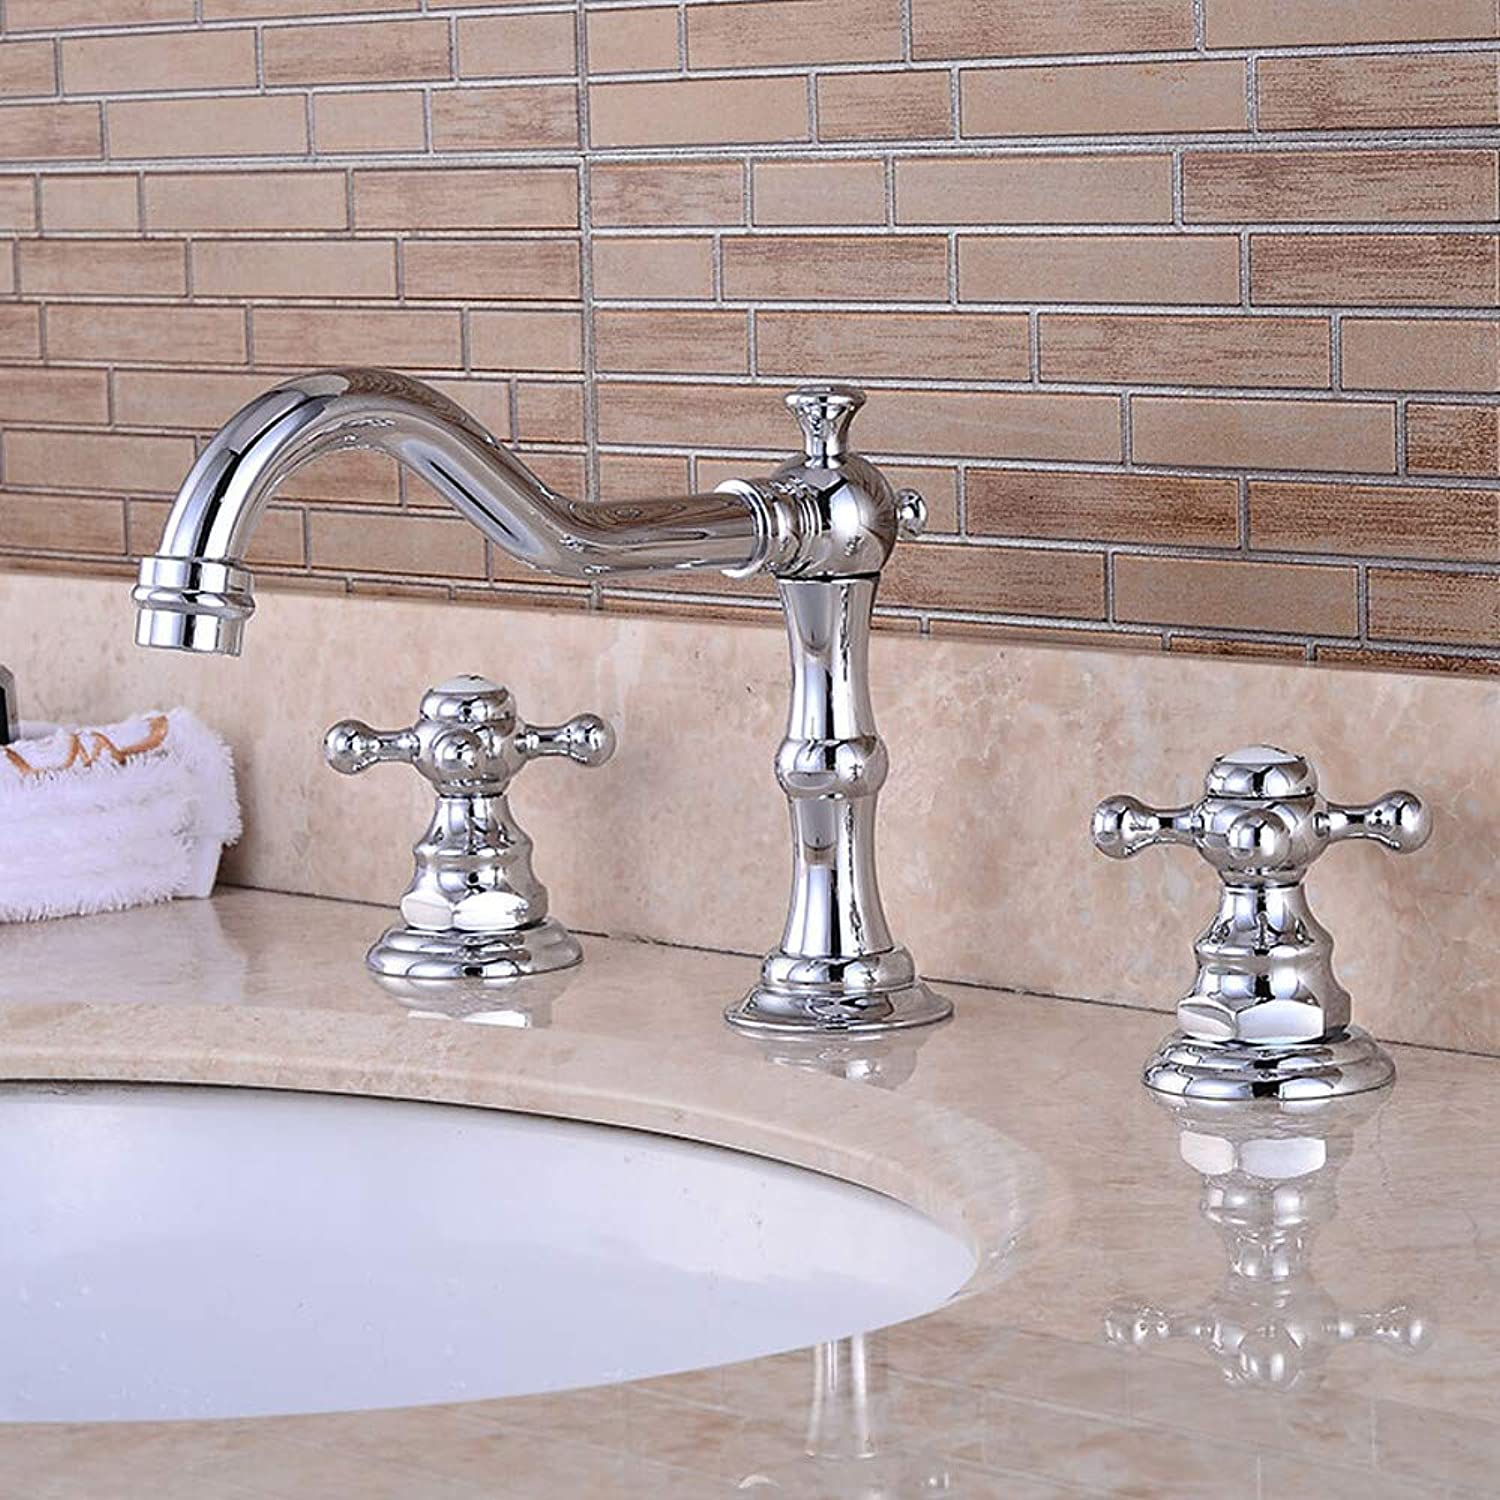 Bathroom Sink Faucet - Pre Rinse Waterfall Widespread Chrome Centerset Two Handles Three Holes,58 x 8 cm,58 X 8 cm